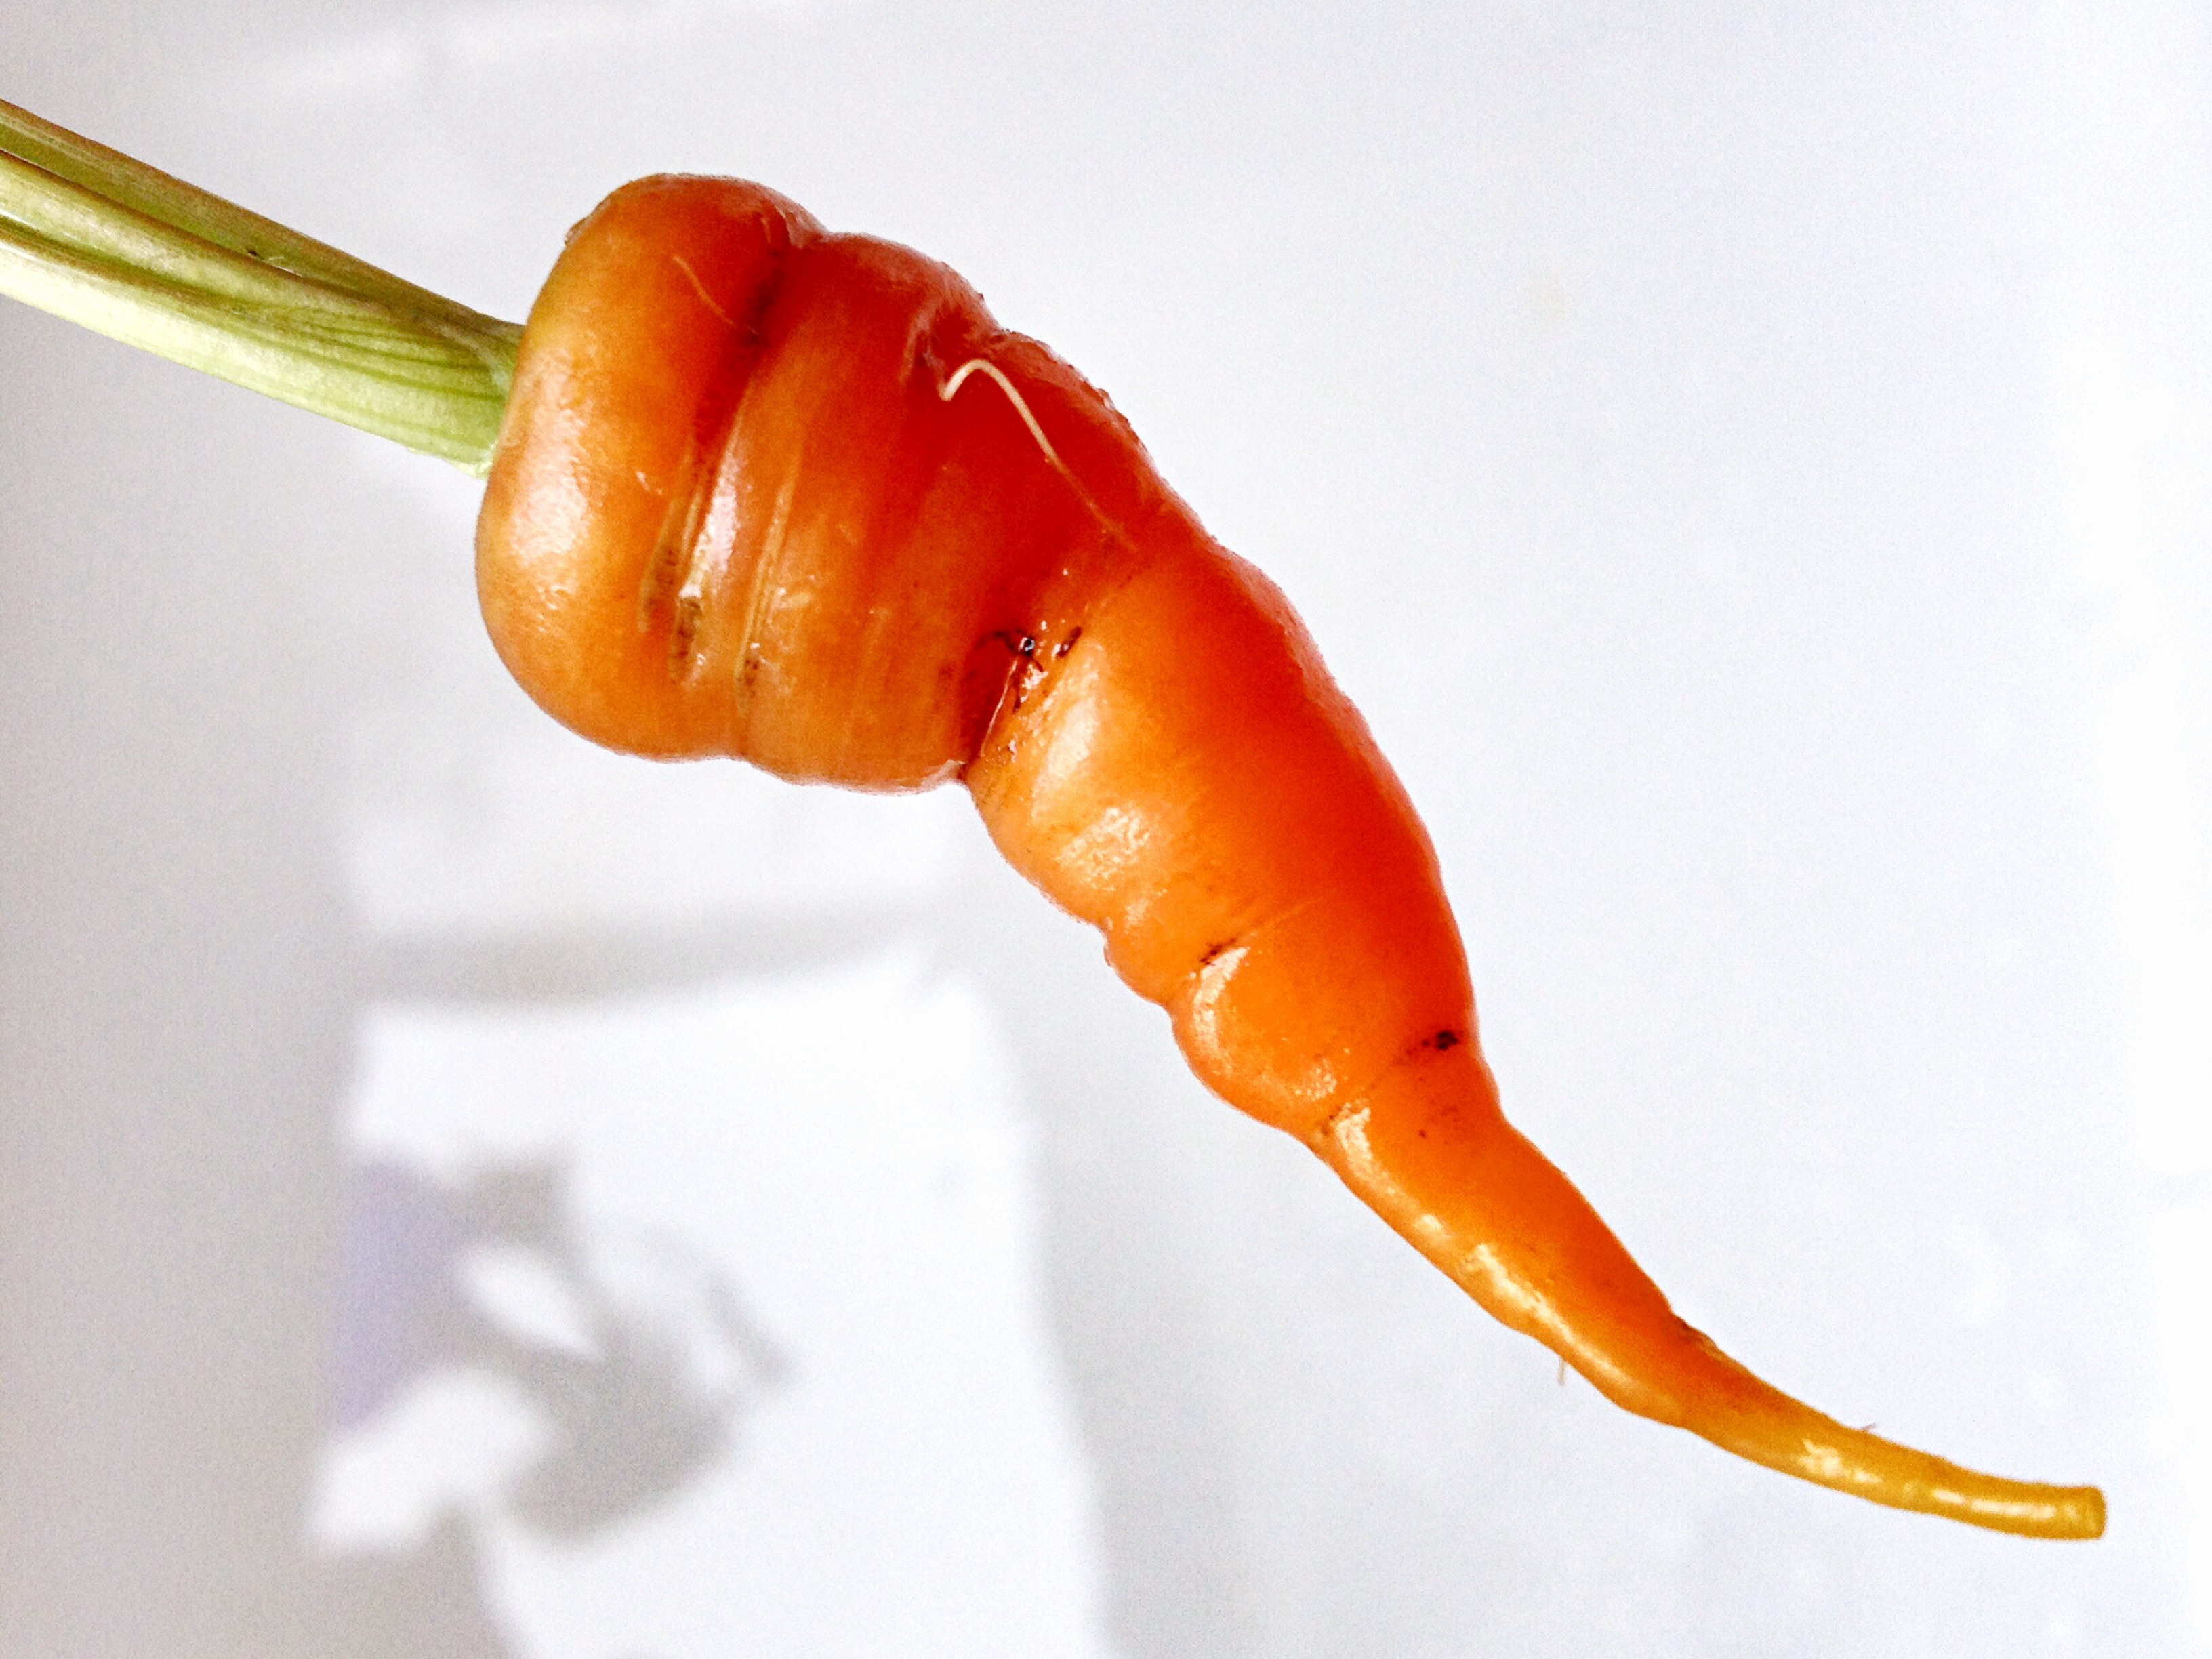 minecraft how to turn carrots into seeds automaticly